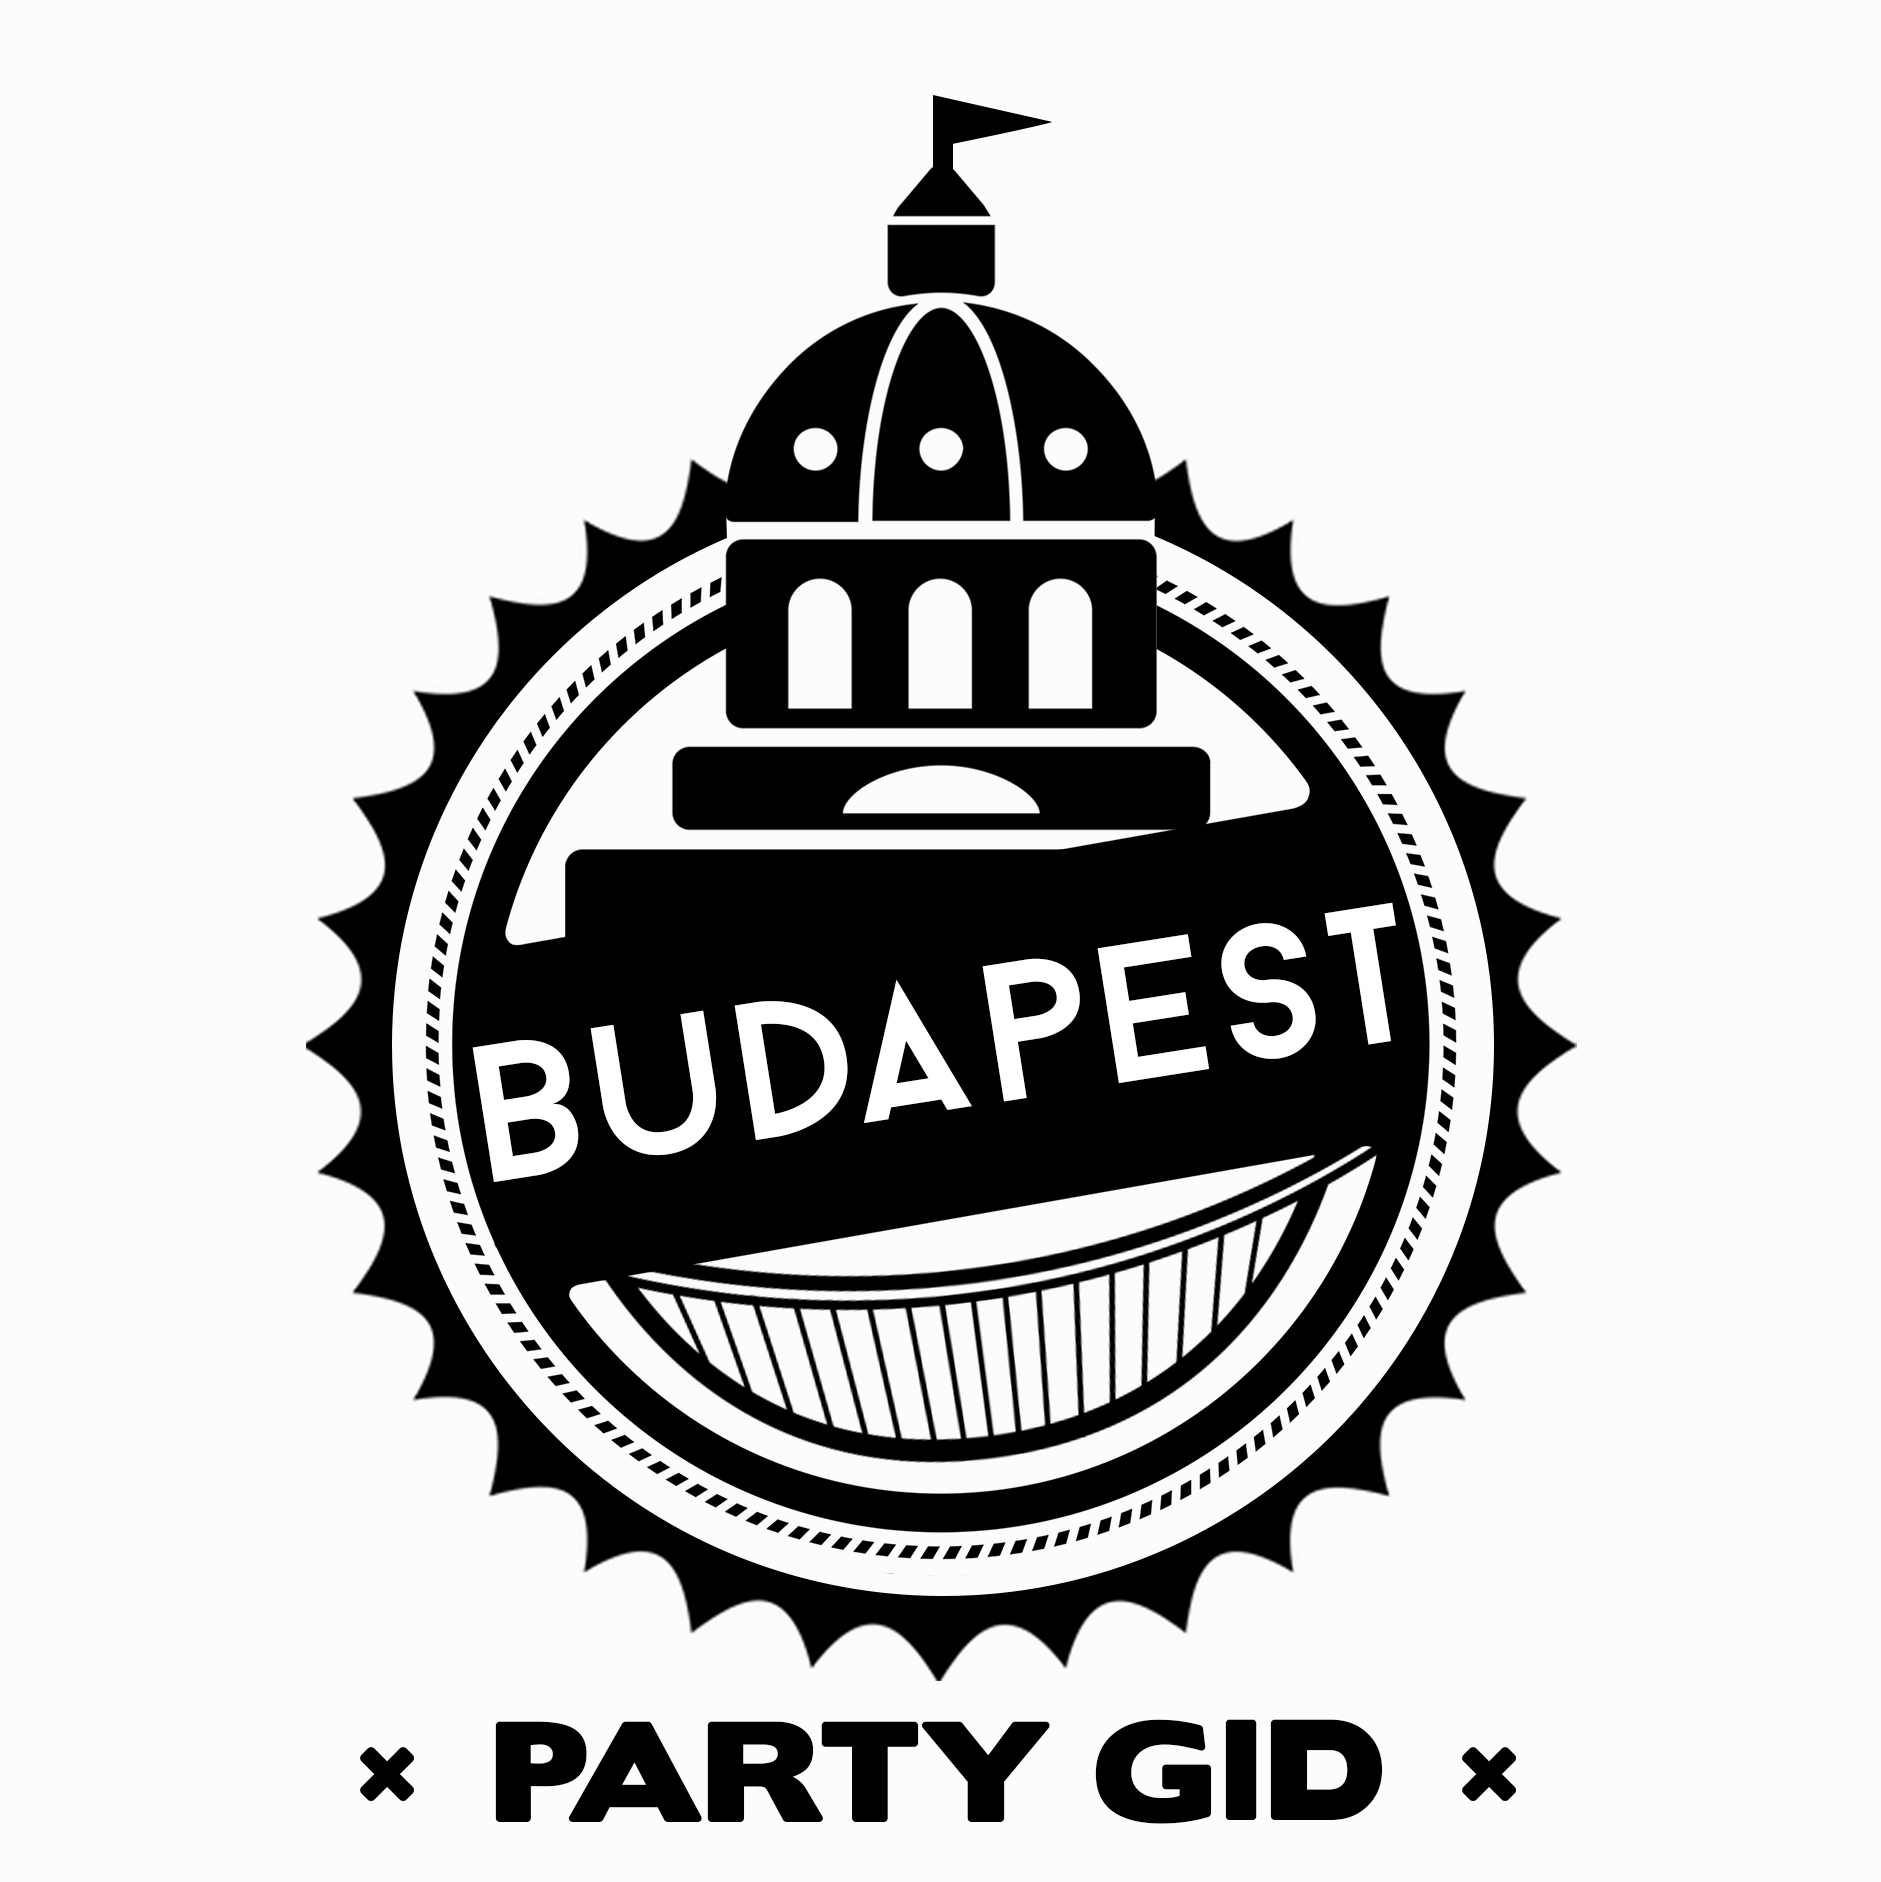 BP_Party_GID_LOGO.jpg